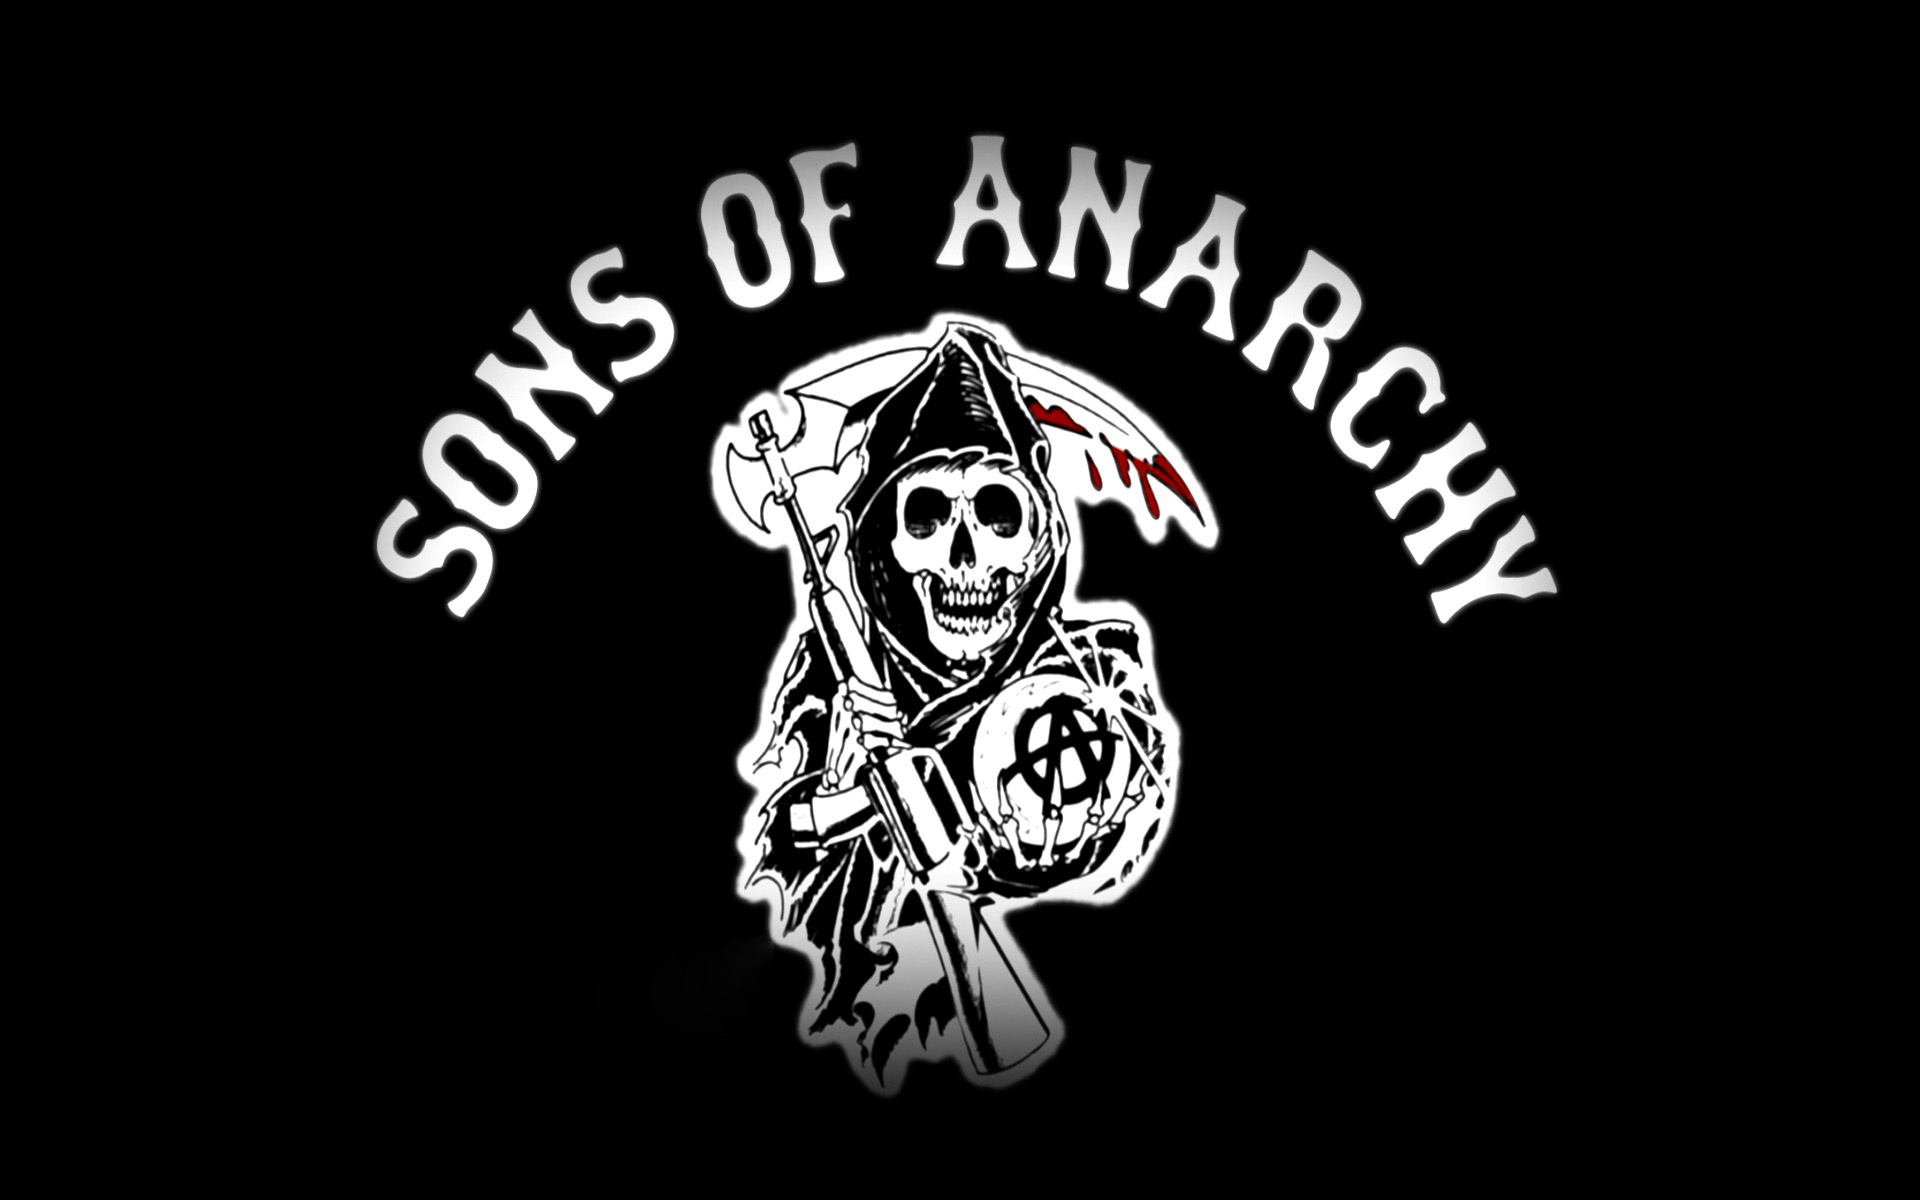 [76+] Sons Of Anarchy Wallpaper on WallpaperSafari